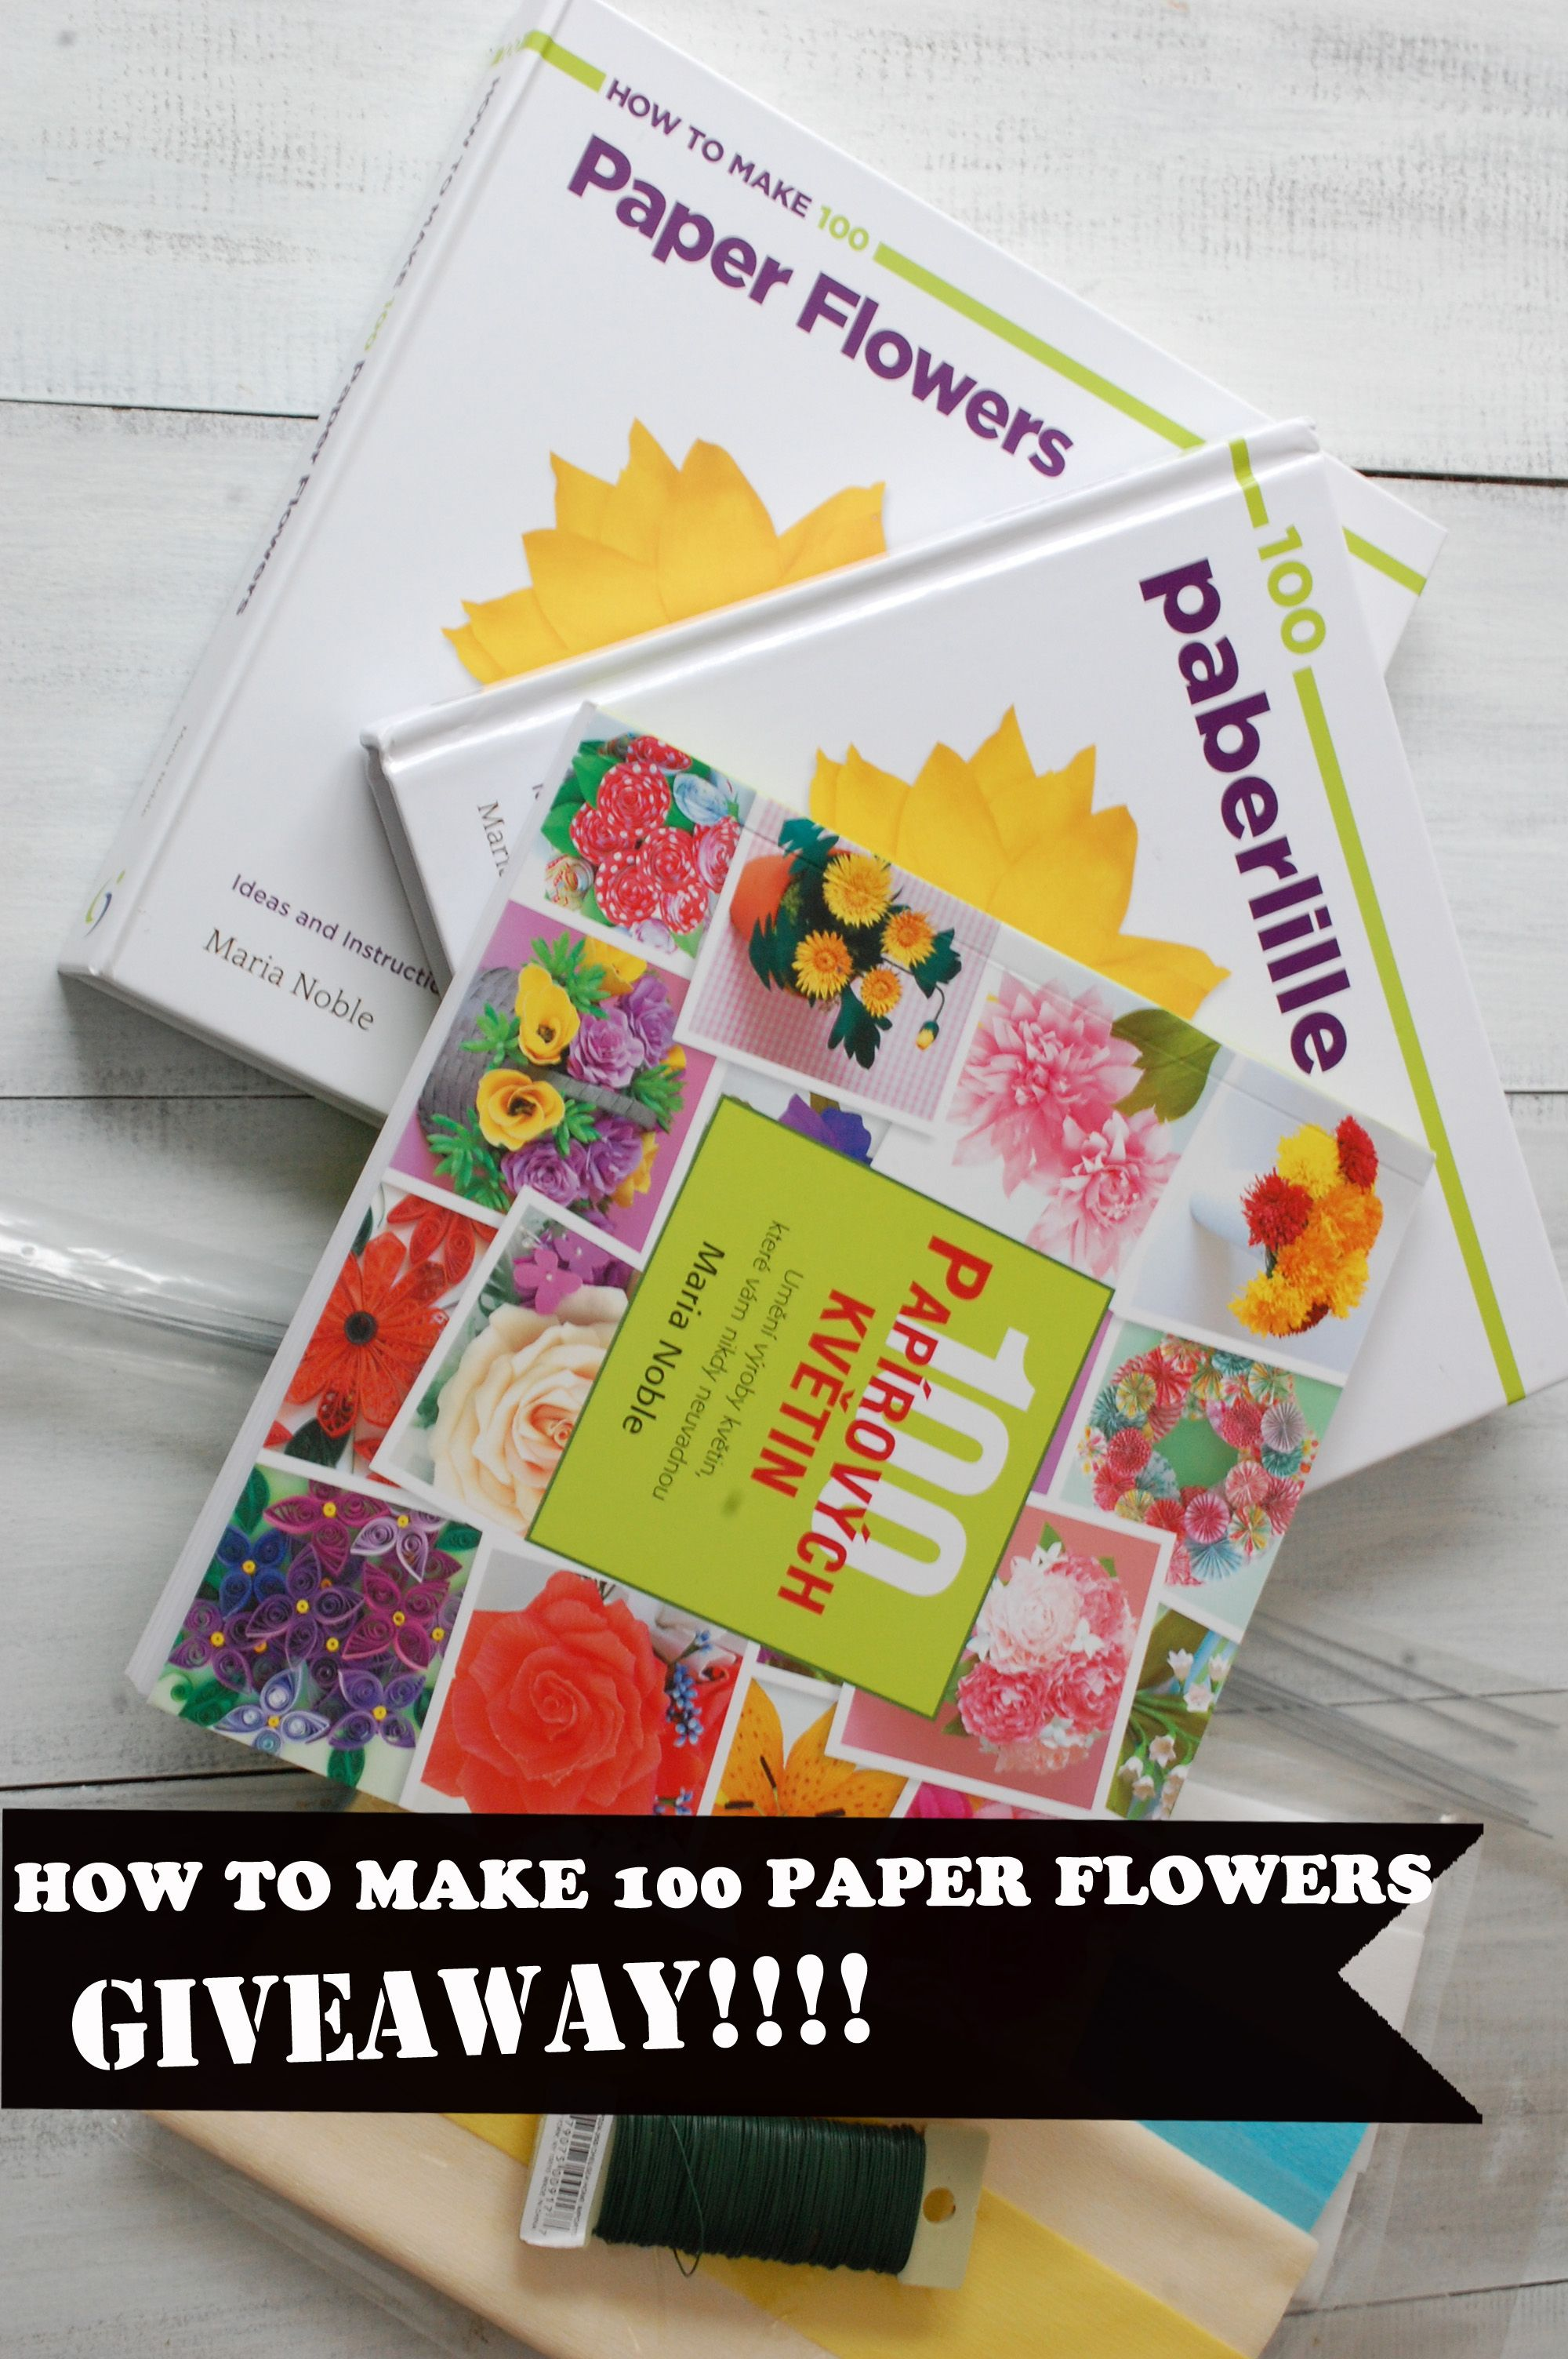 A diy crepe paper flower book giveaway now translated into a diy crepe paper flower book giveaway now translated into estonian too mightylinksfo